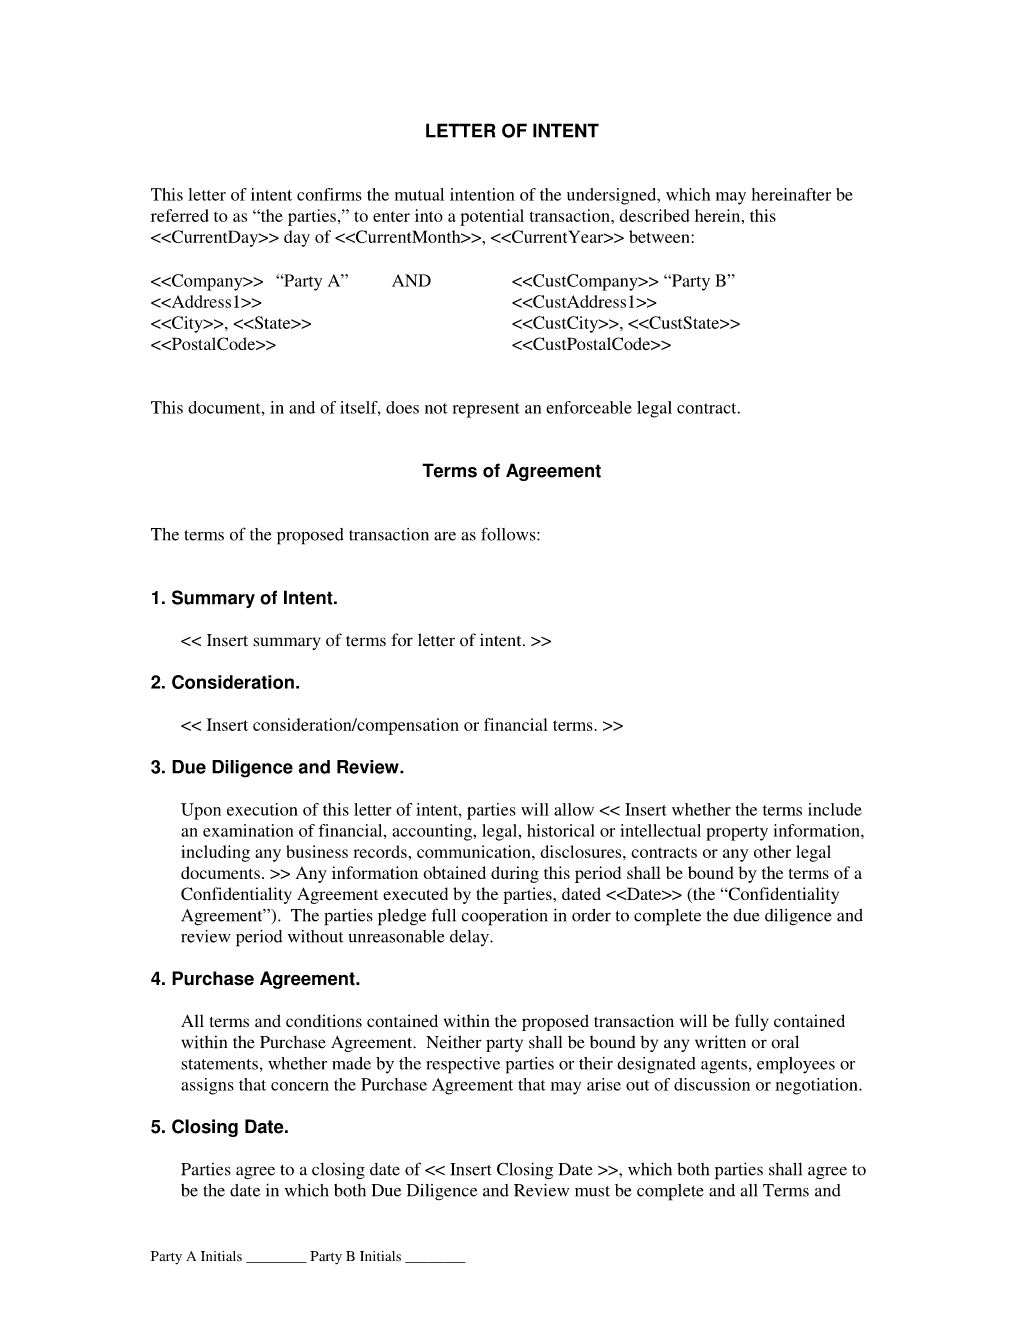 Subcontractor Letter Of Intent Template - Letter Of Intent Agreement the Letter Of Intent Agreement is